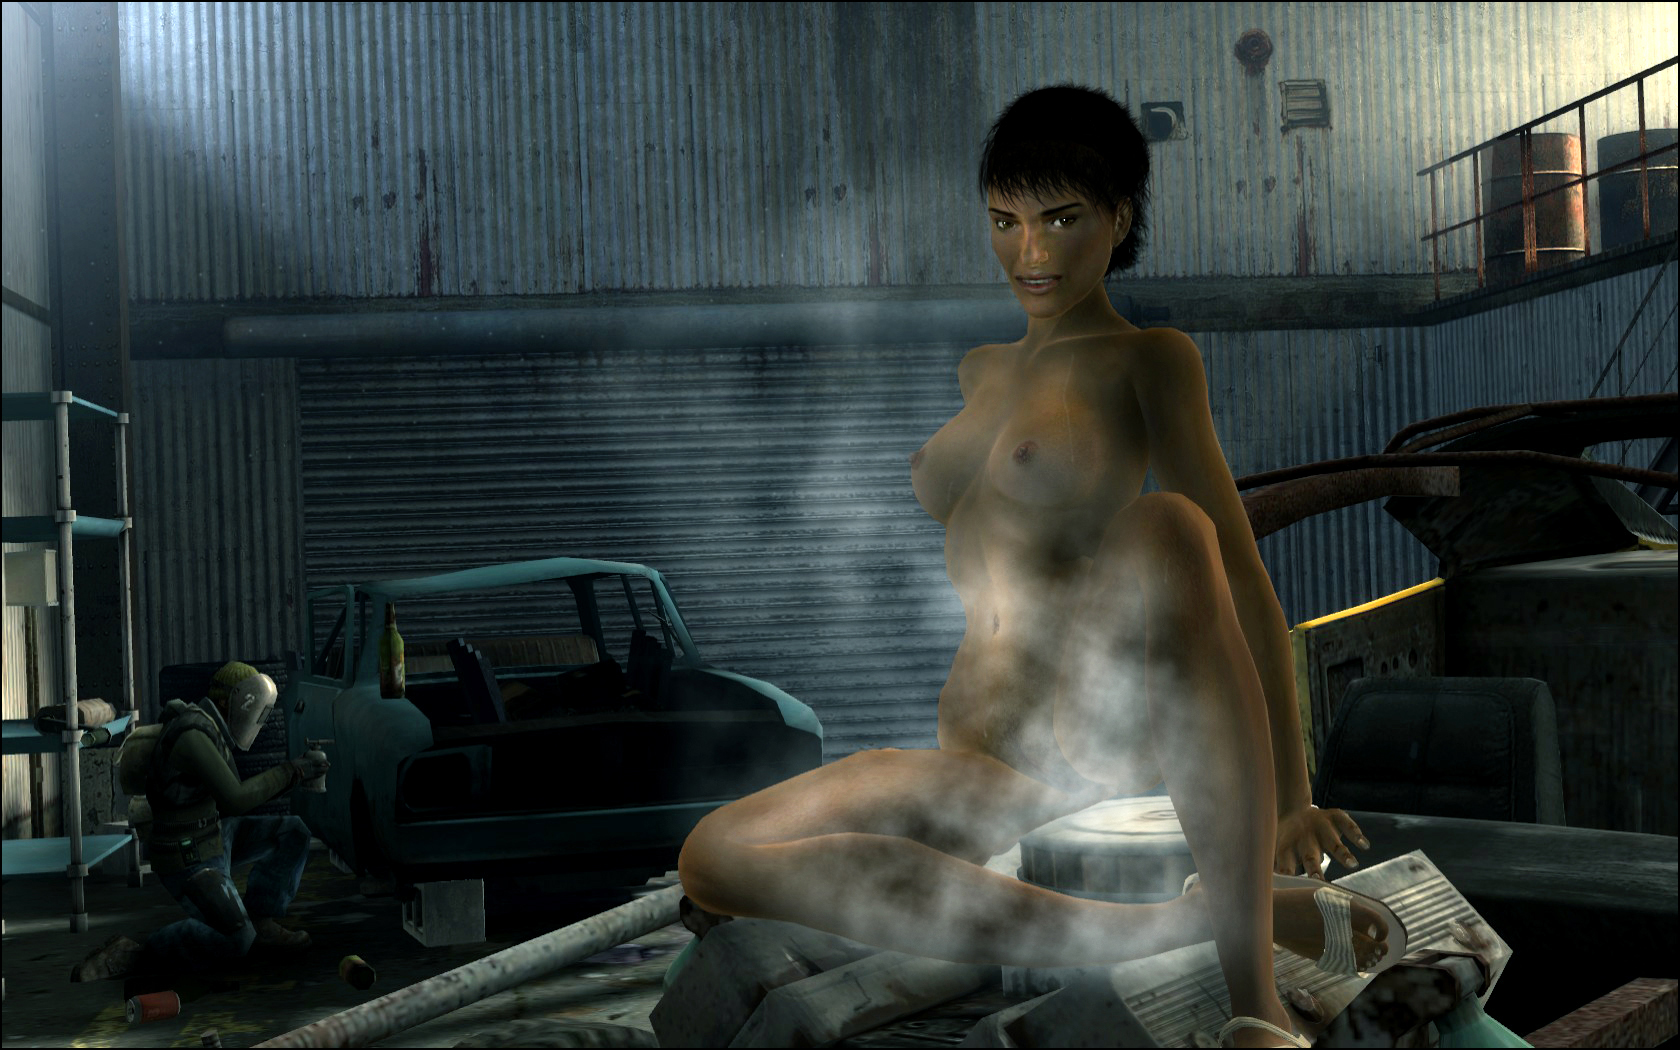 nude fallout glorious mod 4 female Emily wants to play rules